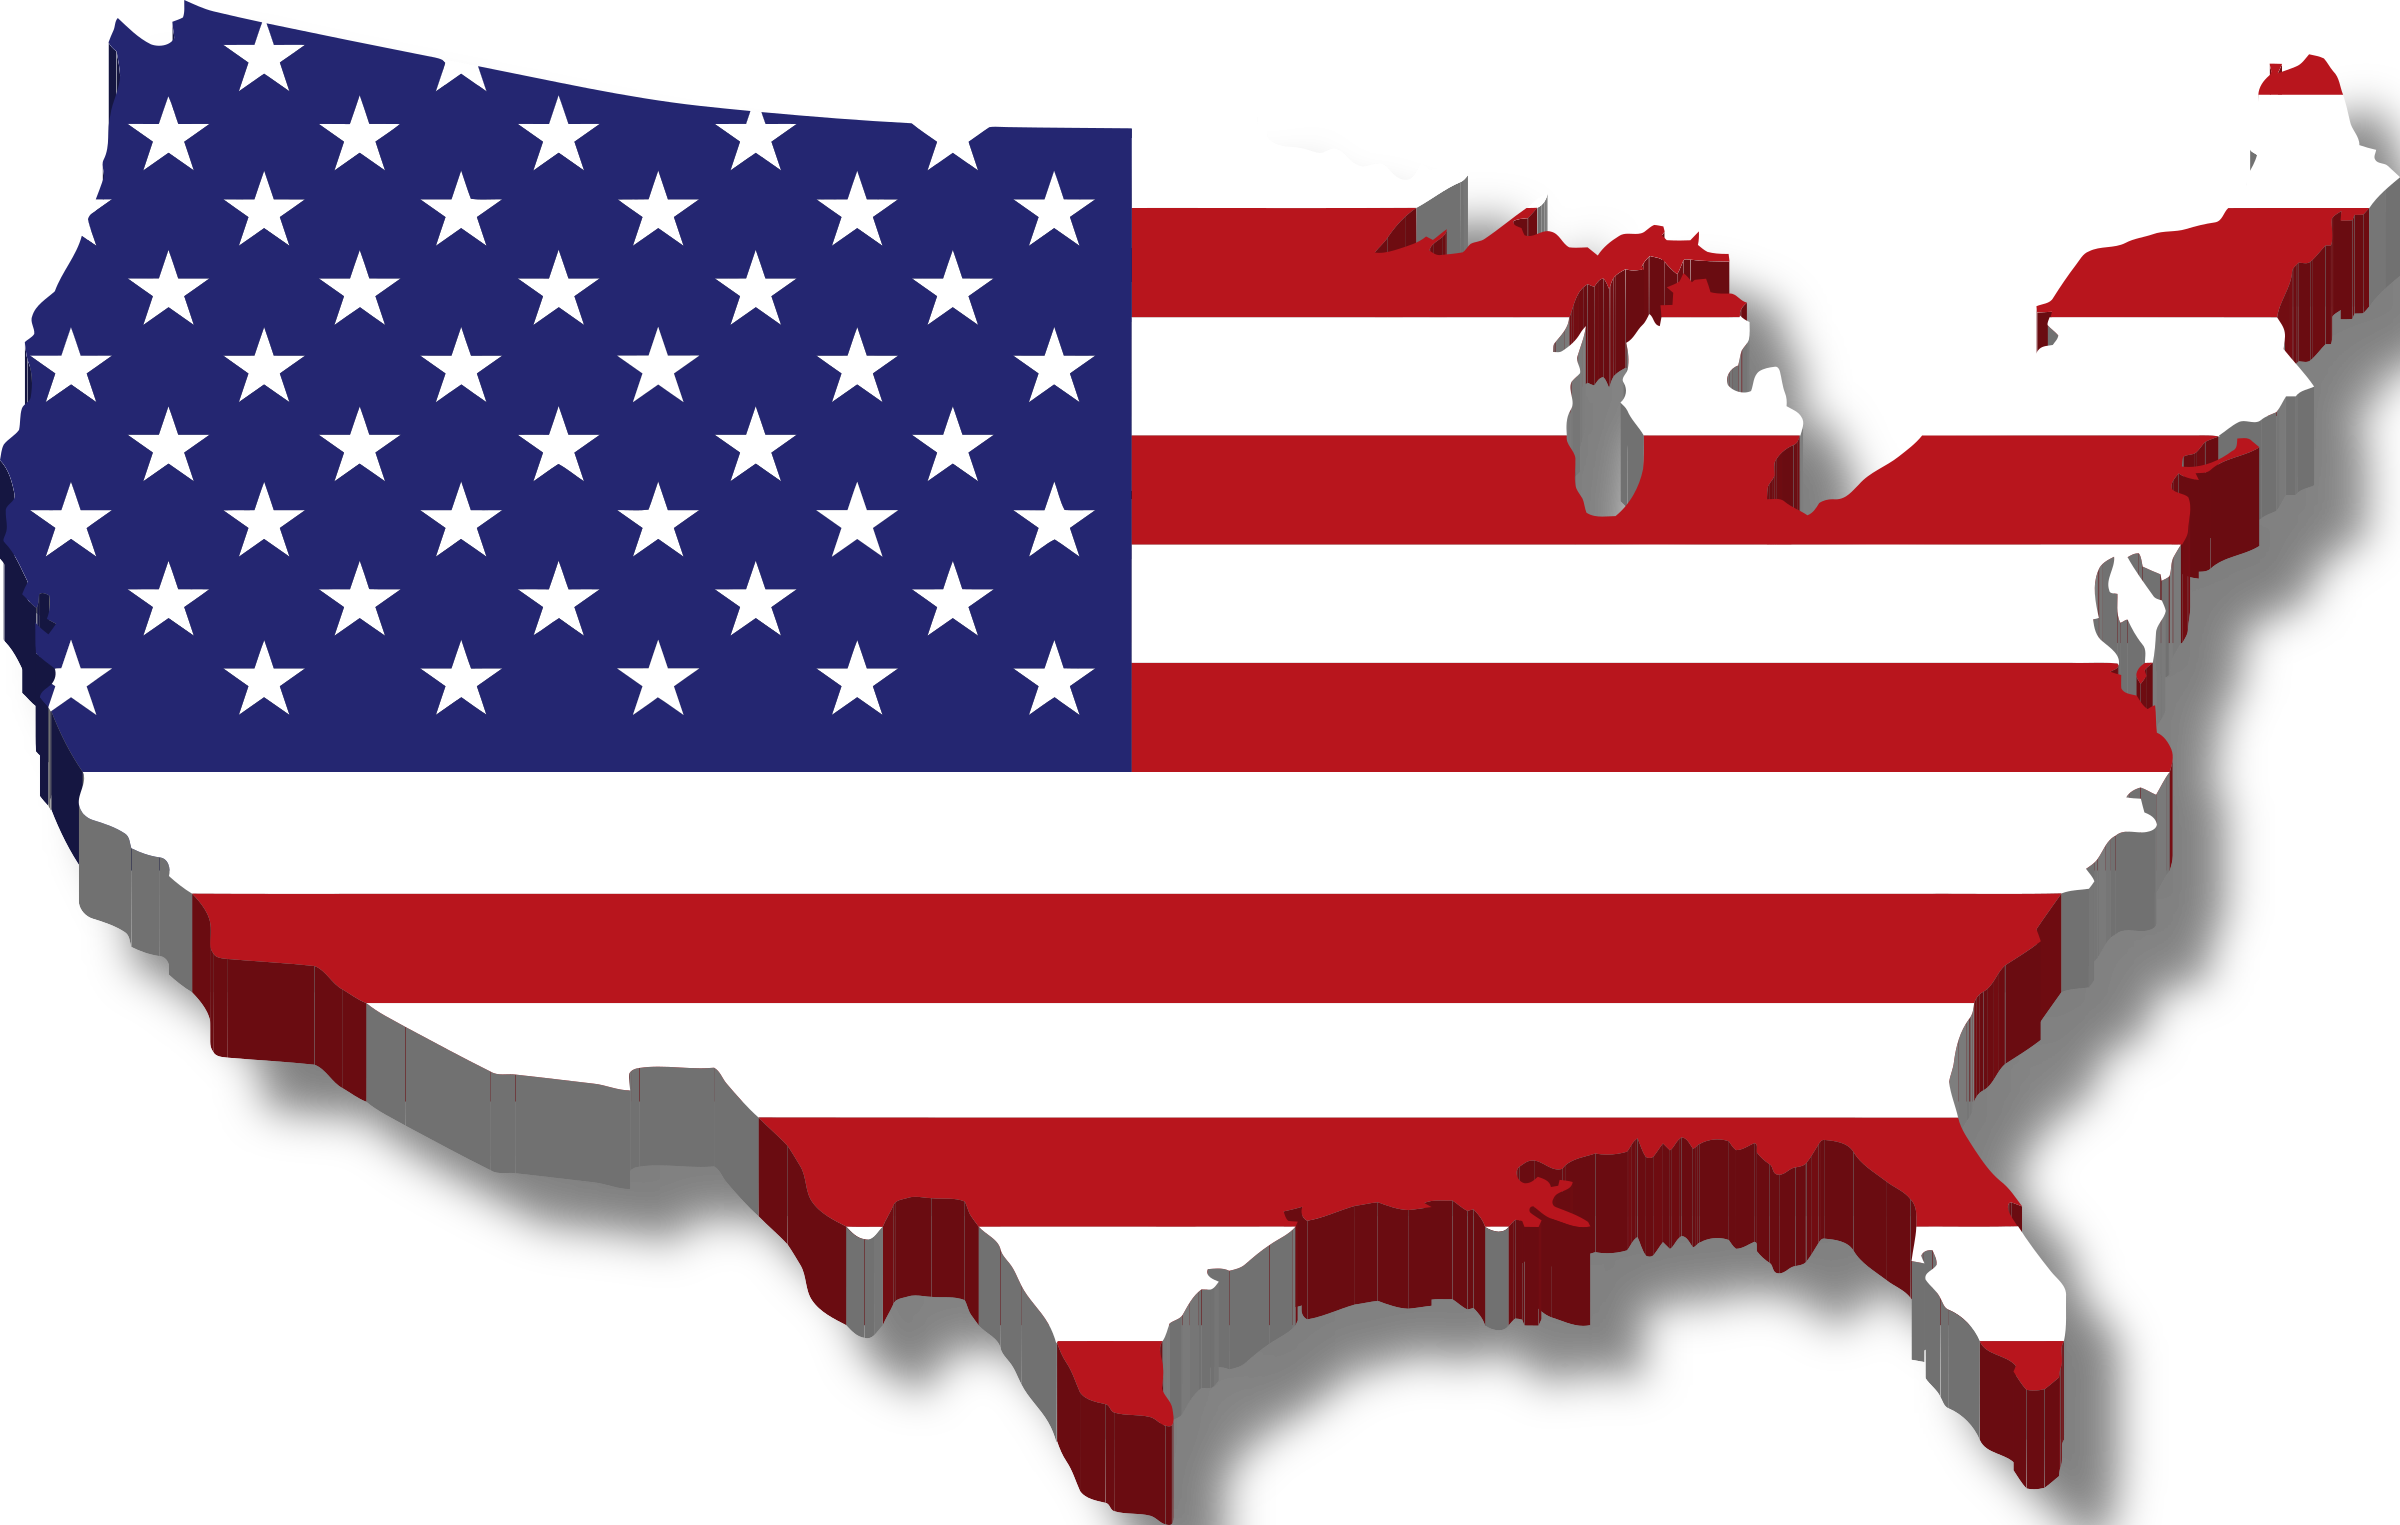 Us map clipart powerpoint picture freeuse Clipart - America Map Flag w/ Drop Shadow picture freeuse